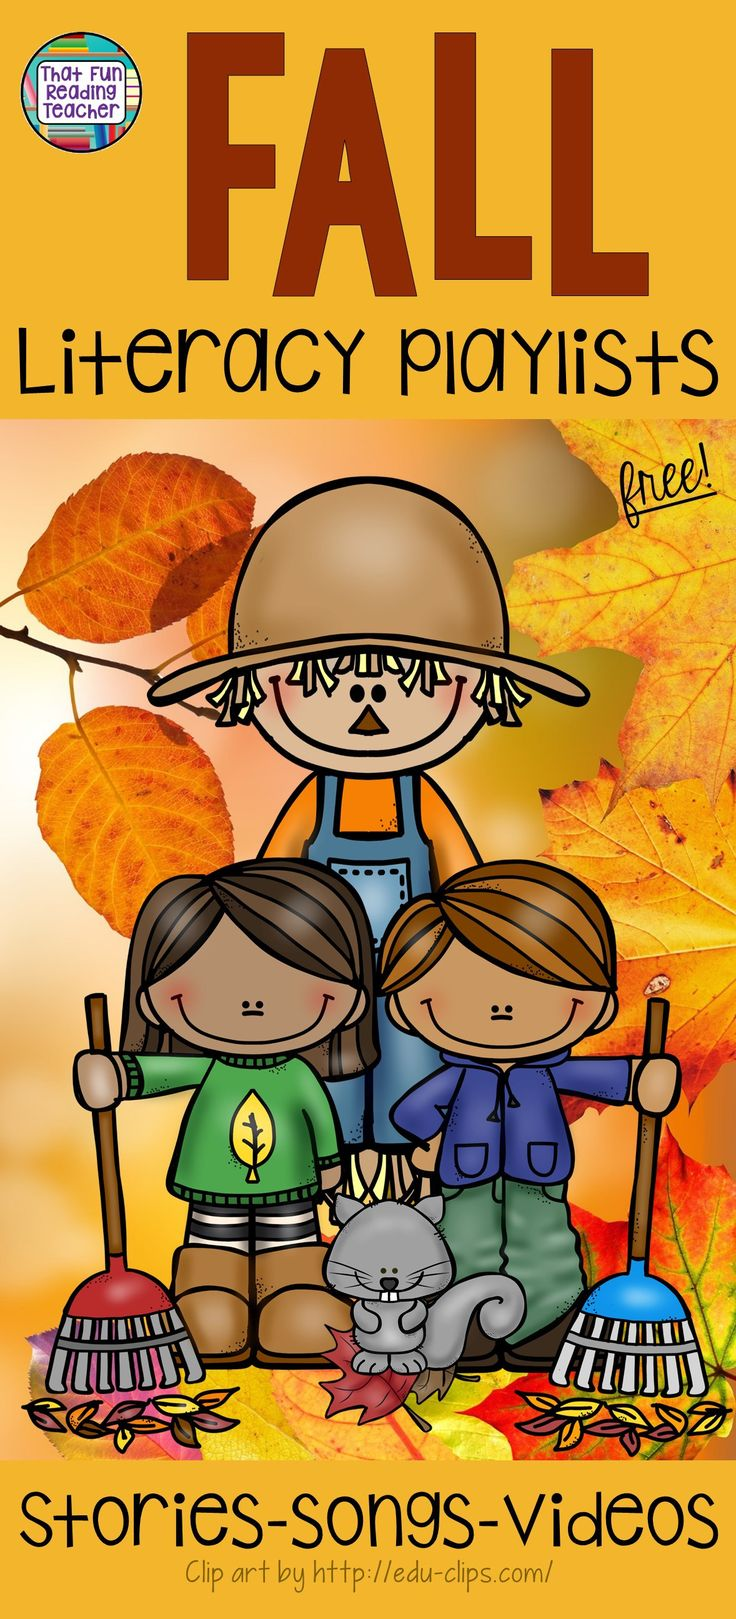 Free Fall Literacy playlists - stories, songs, poems, videos about Autumn, Halloween, Thanksgiving & Remembrance / Veterans Day on That Fun Reading Teacher.com